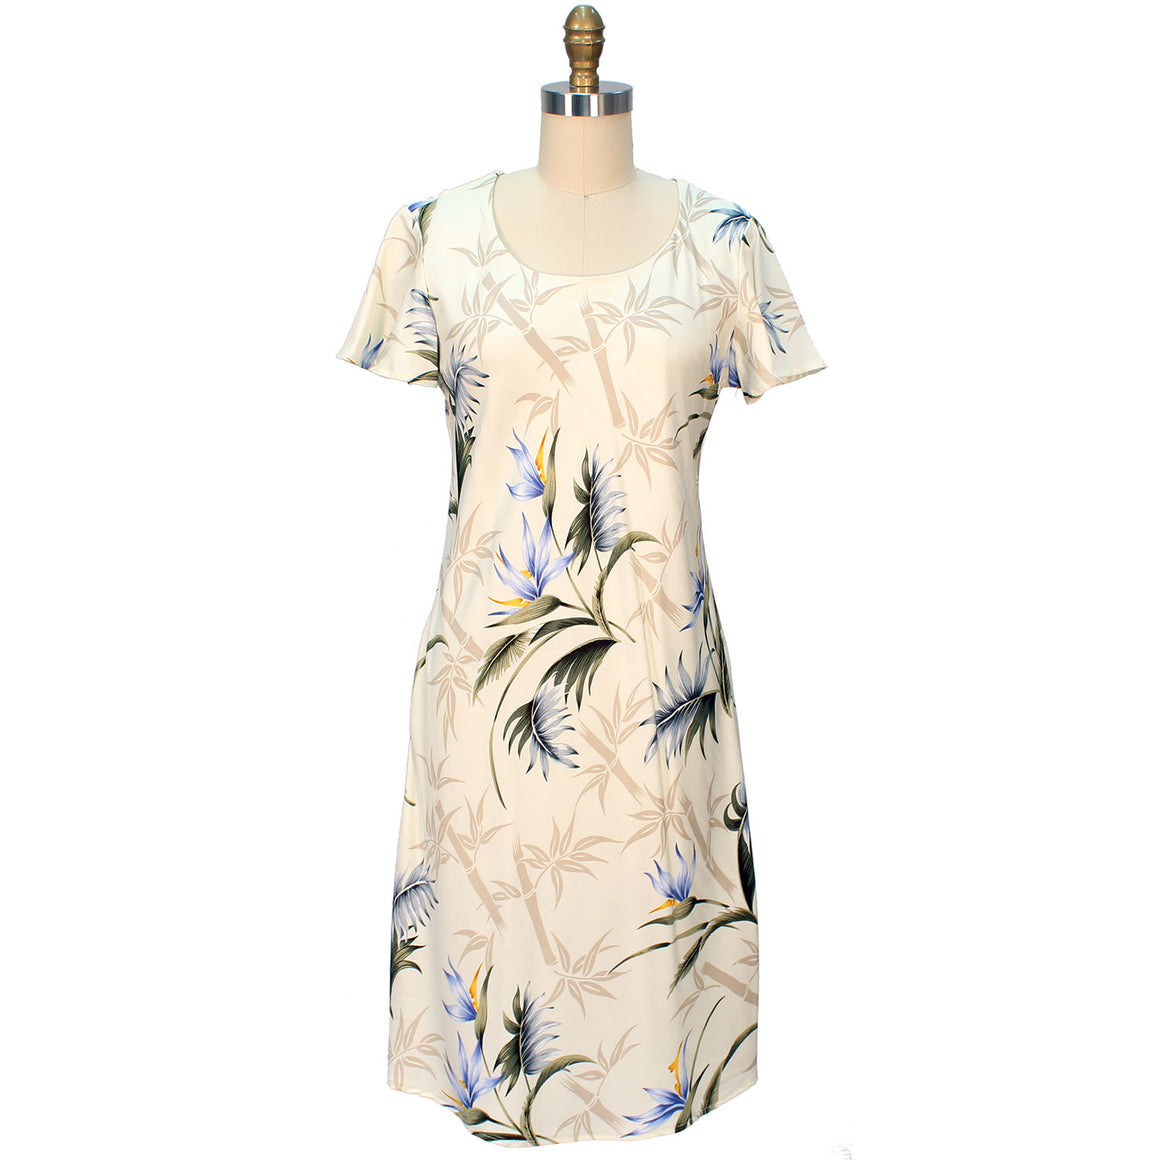 Bamboo Paradise Cream A-Line Dress with Cap Sleeves